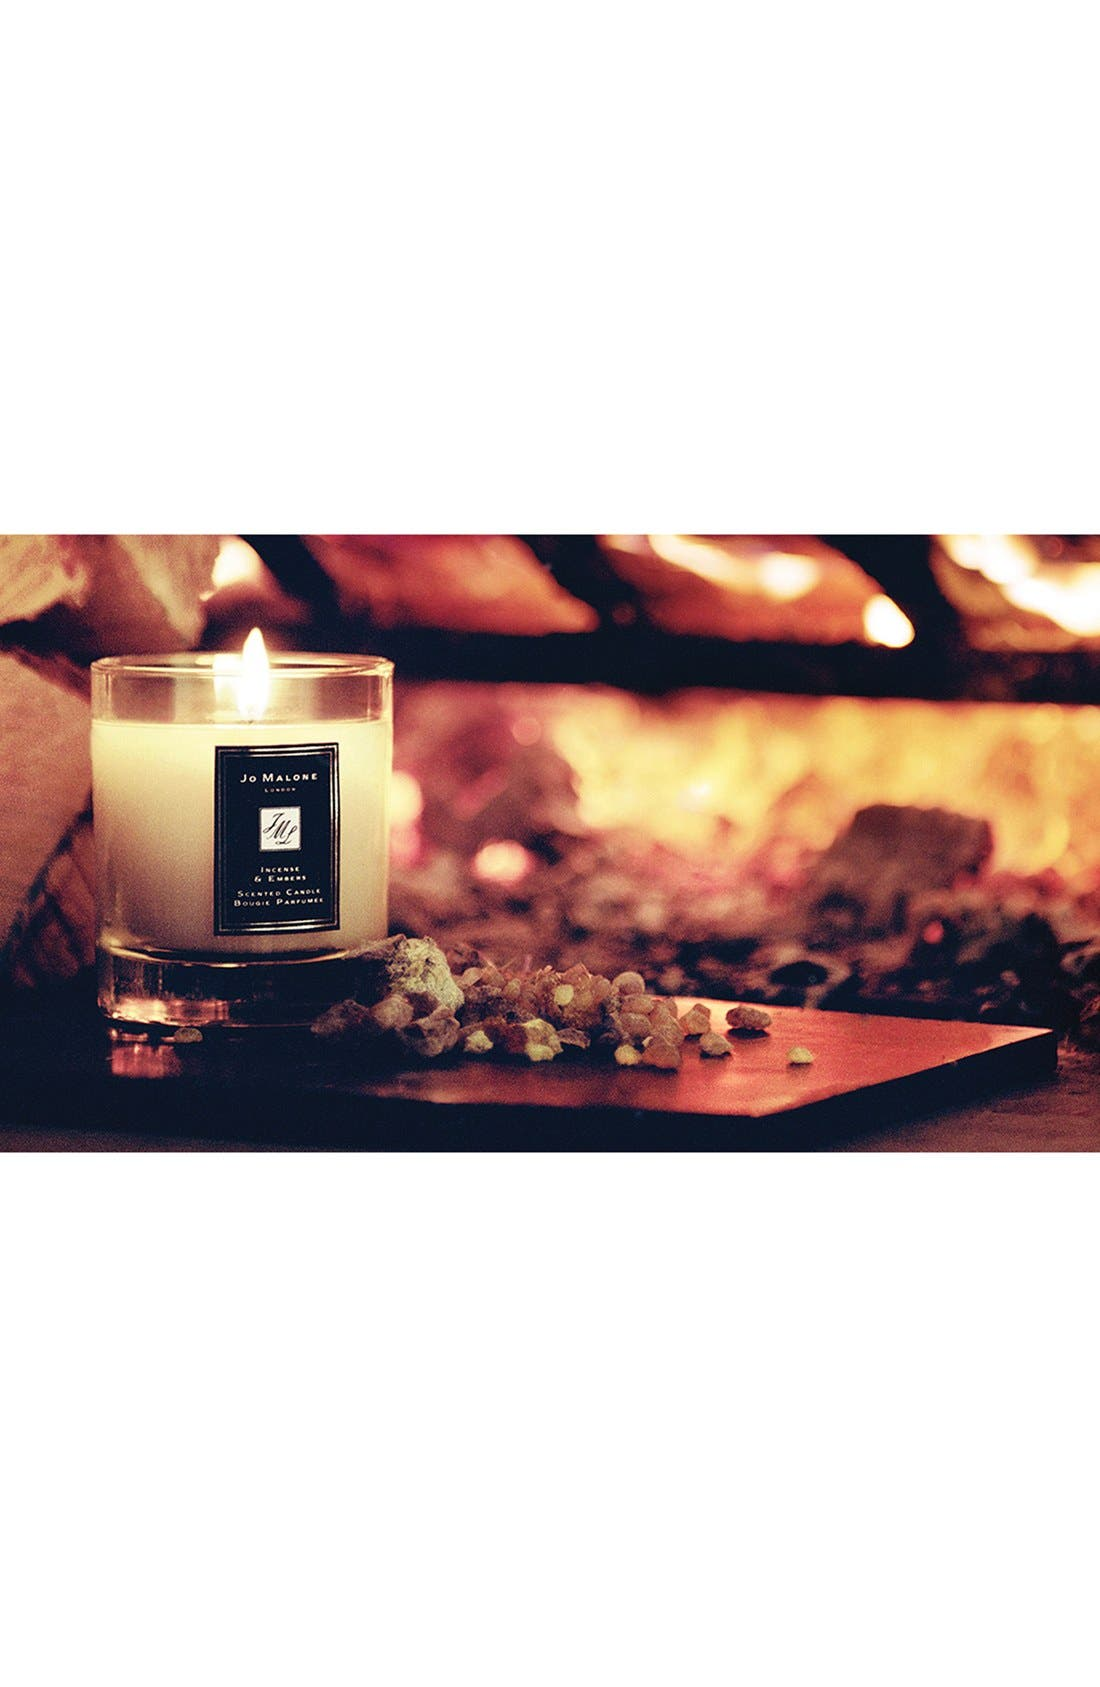 Jo Malone<sup>™</sup> Just Like Sunday - Incense & Embers Candle,                             Alternate thumbnail 4, color,                             NO COLOR